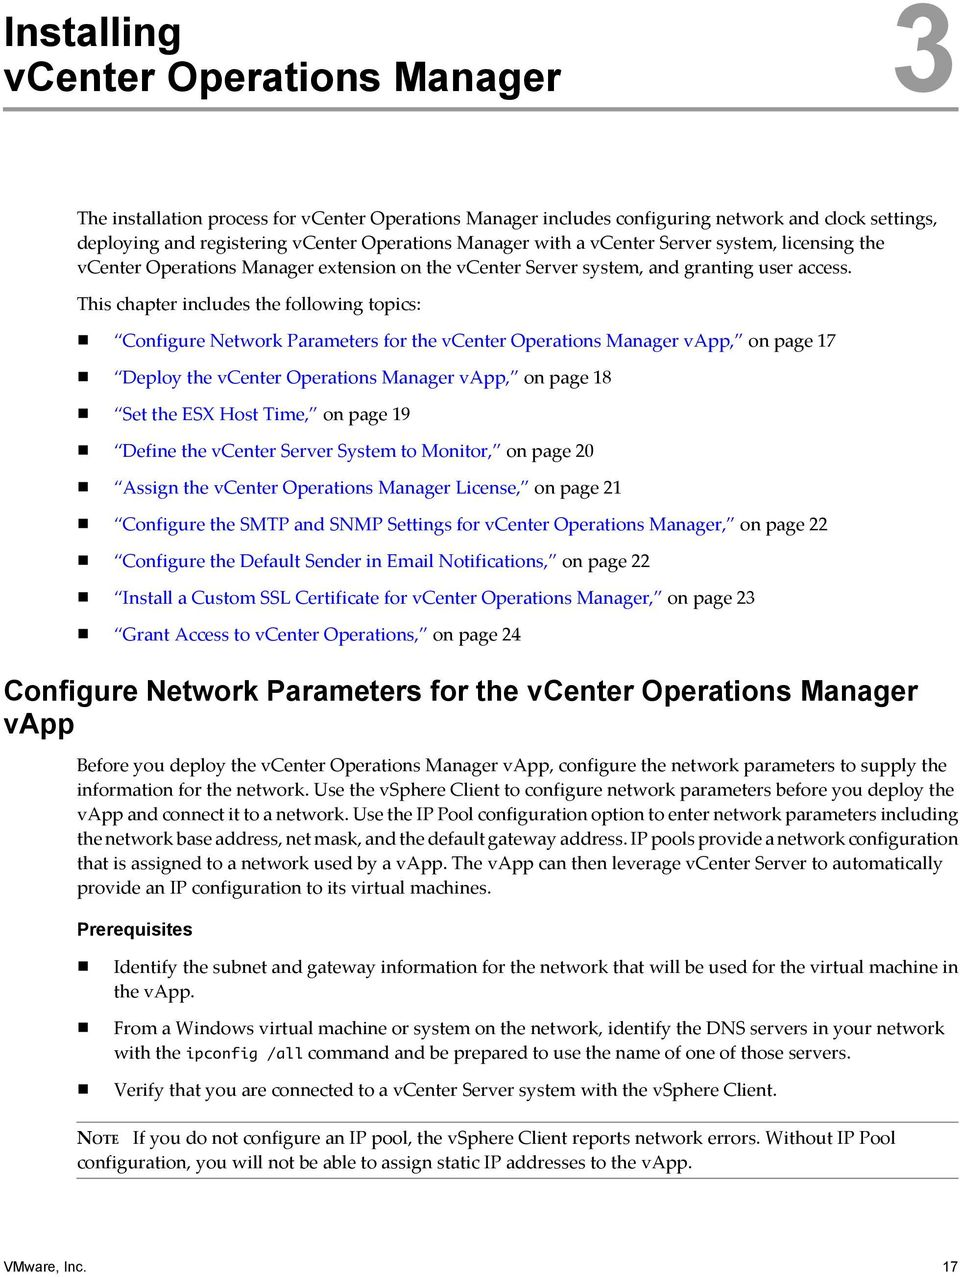 This chapter includes the following topics: Configure Network Parameters for the vcenter Operations Manager vapp, on page 17 Deploy the vcenter Operations Manager vapp, on page 18 Set the ESX Host